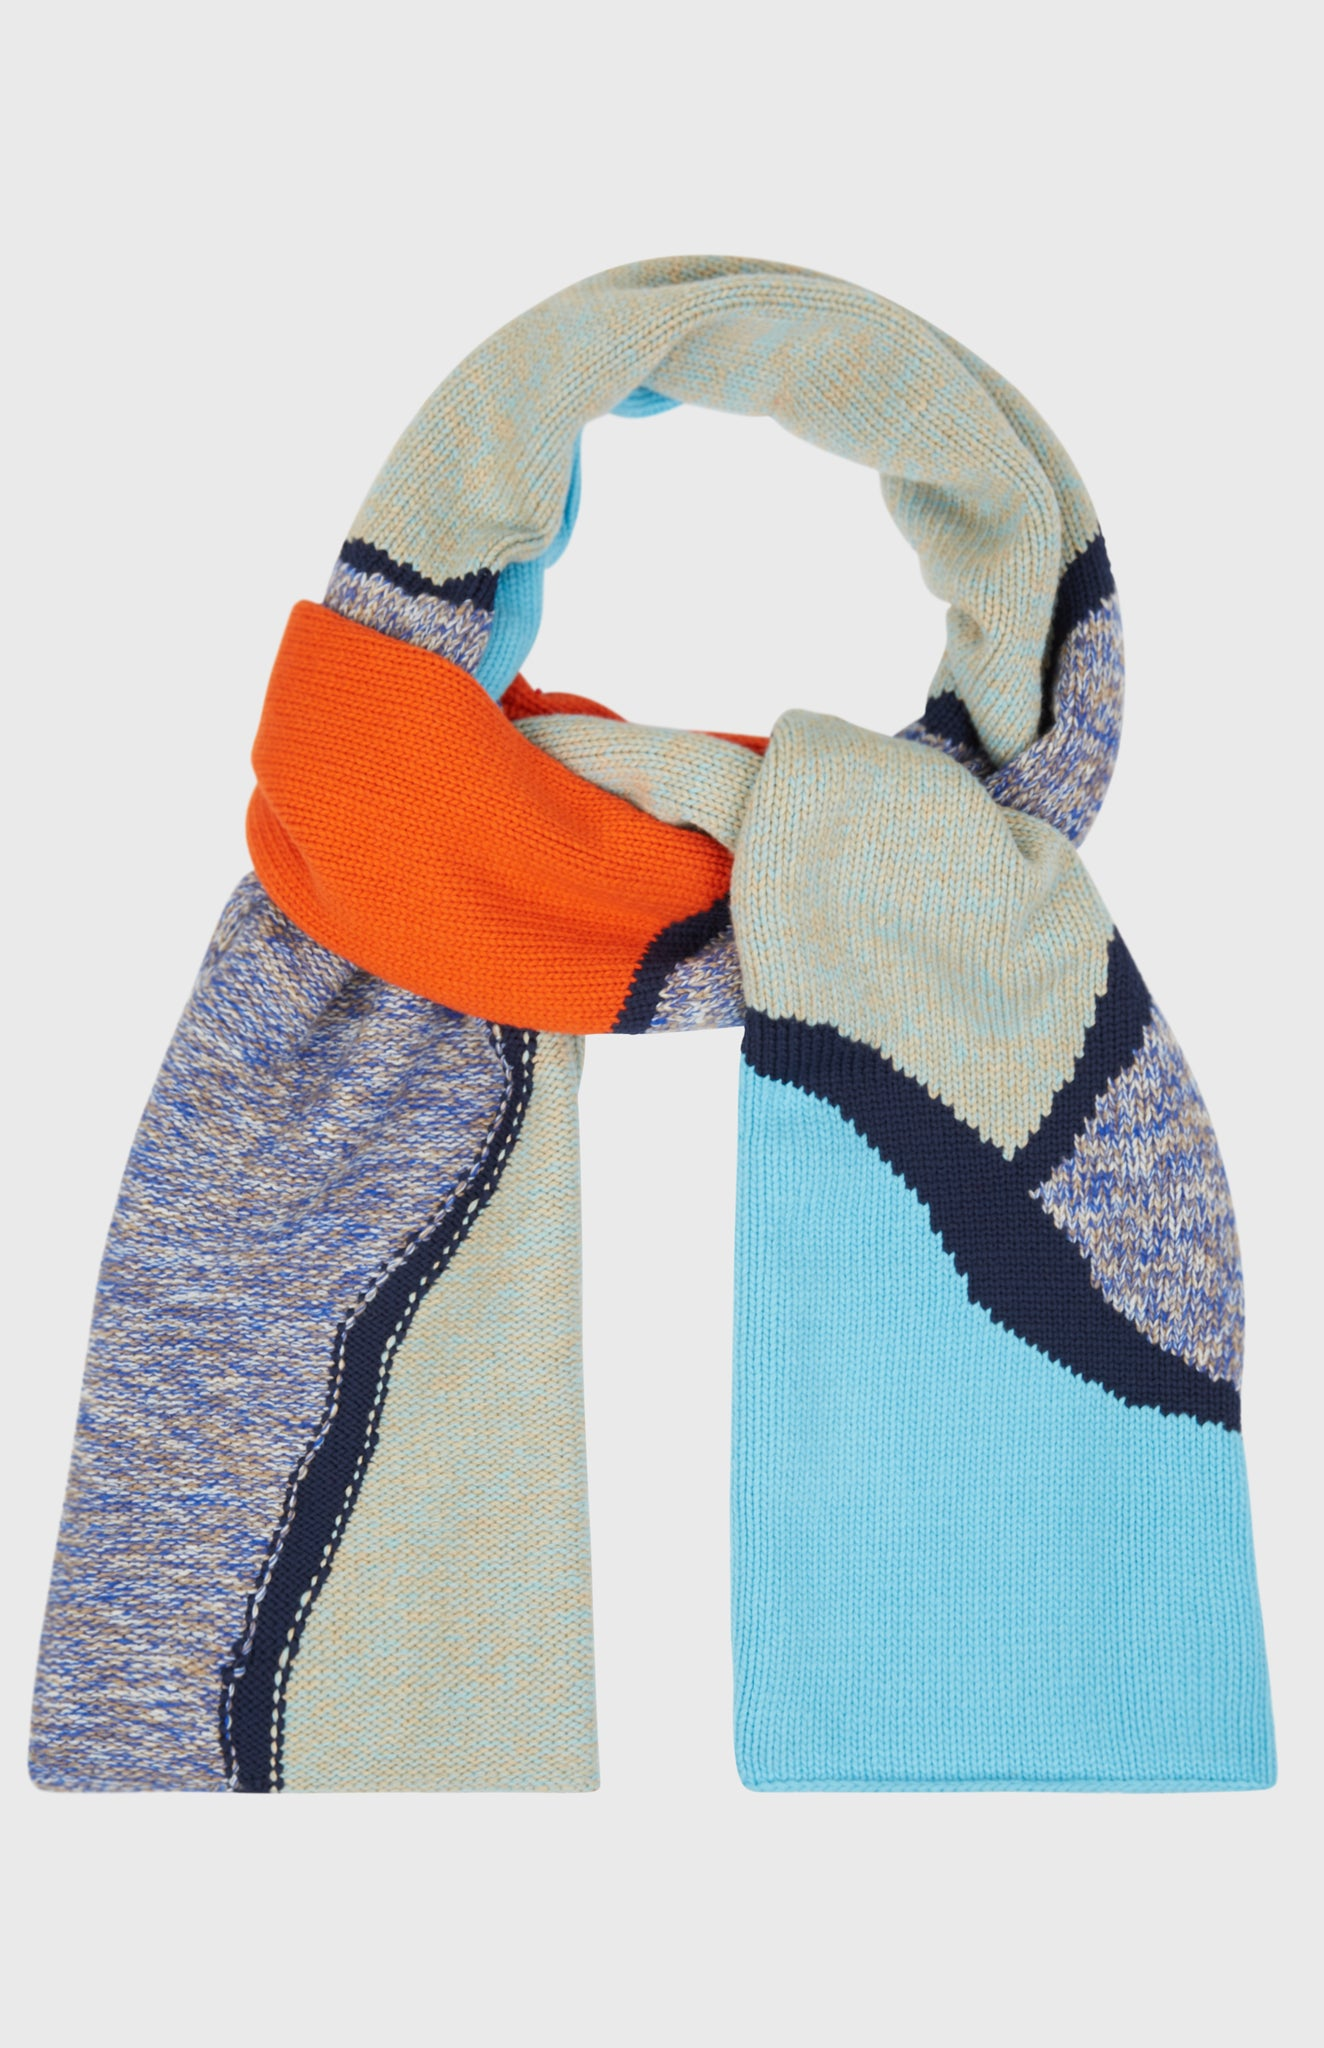 Handknitted Reflections Scarf In Sage Green/Pool Blue